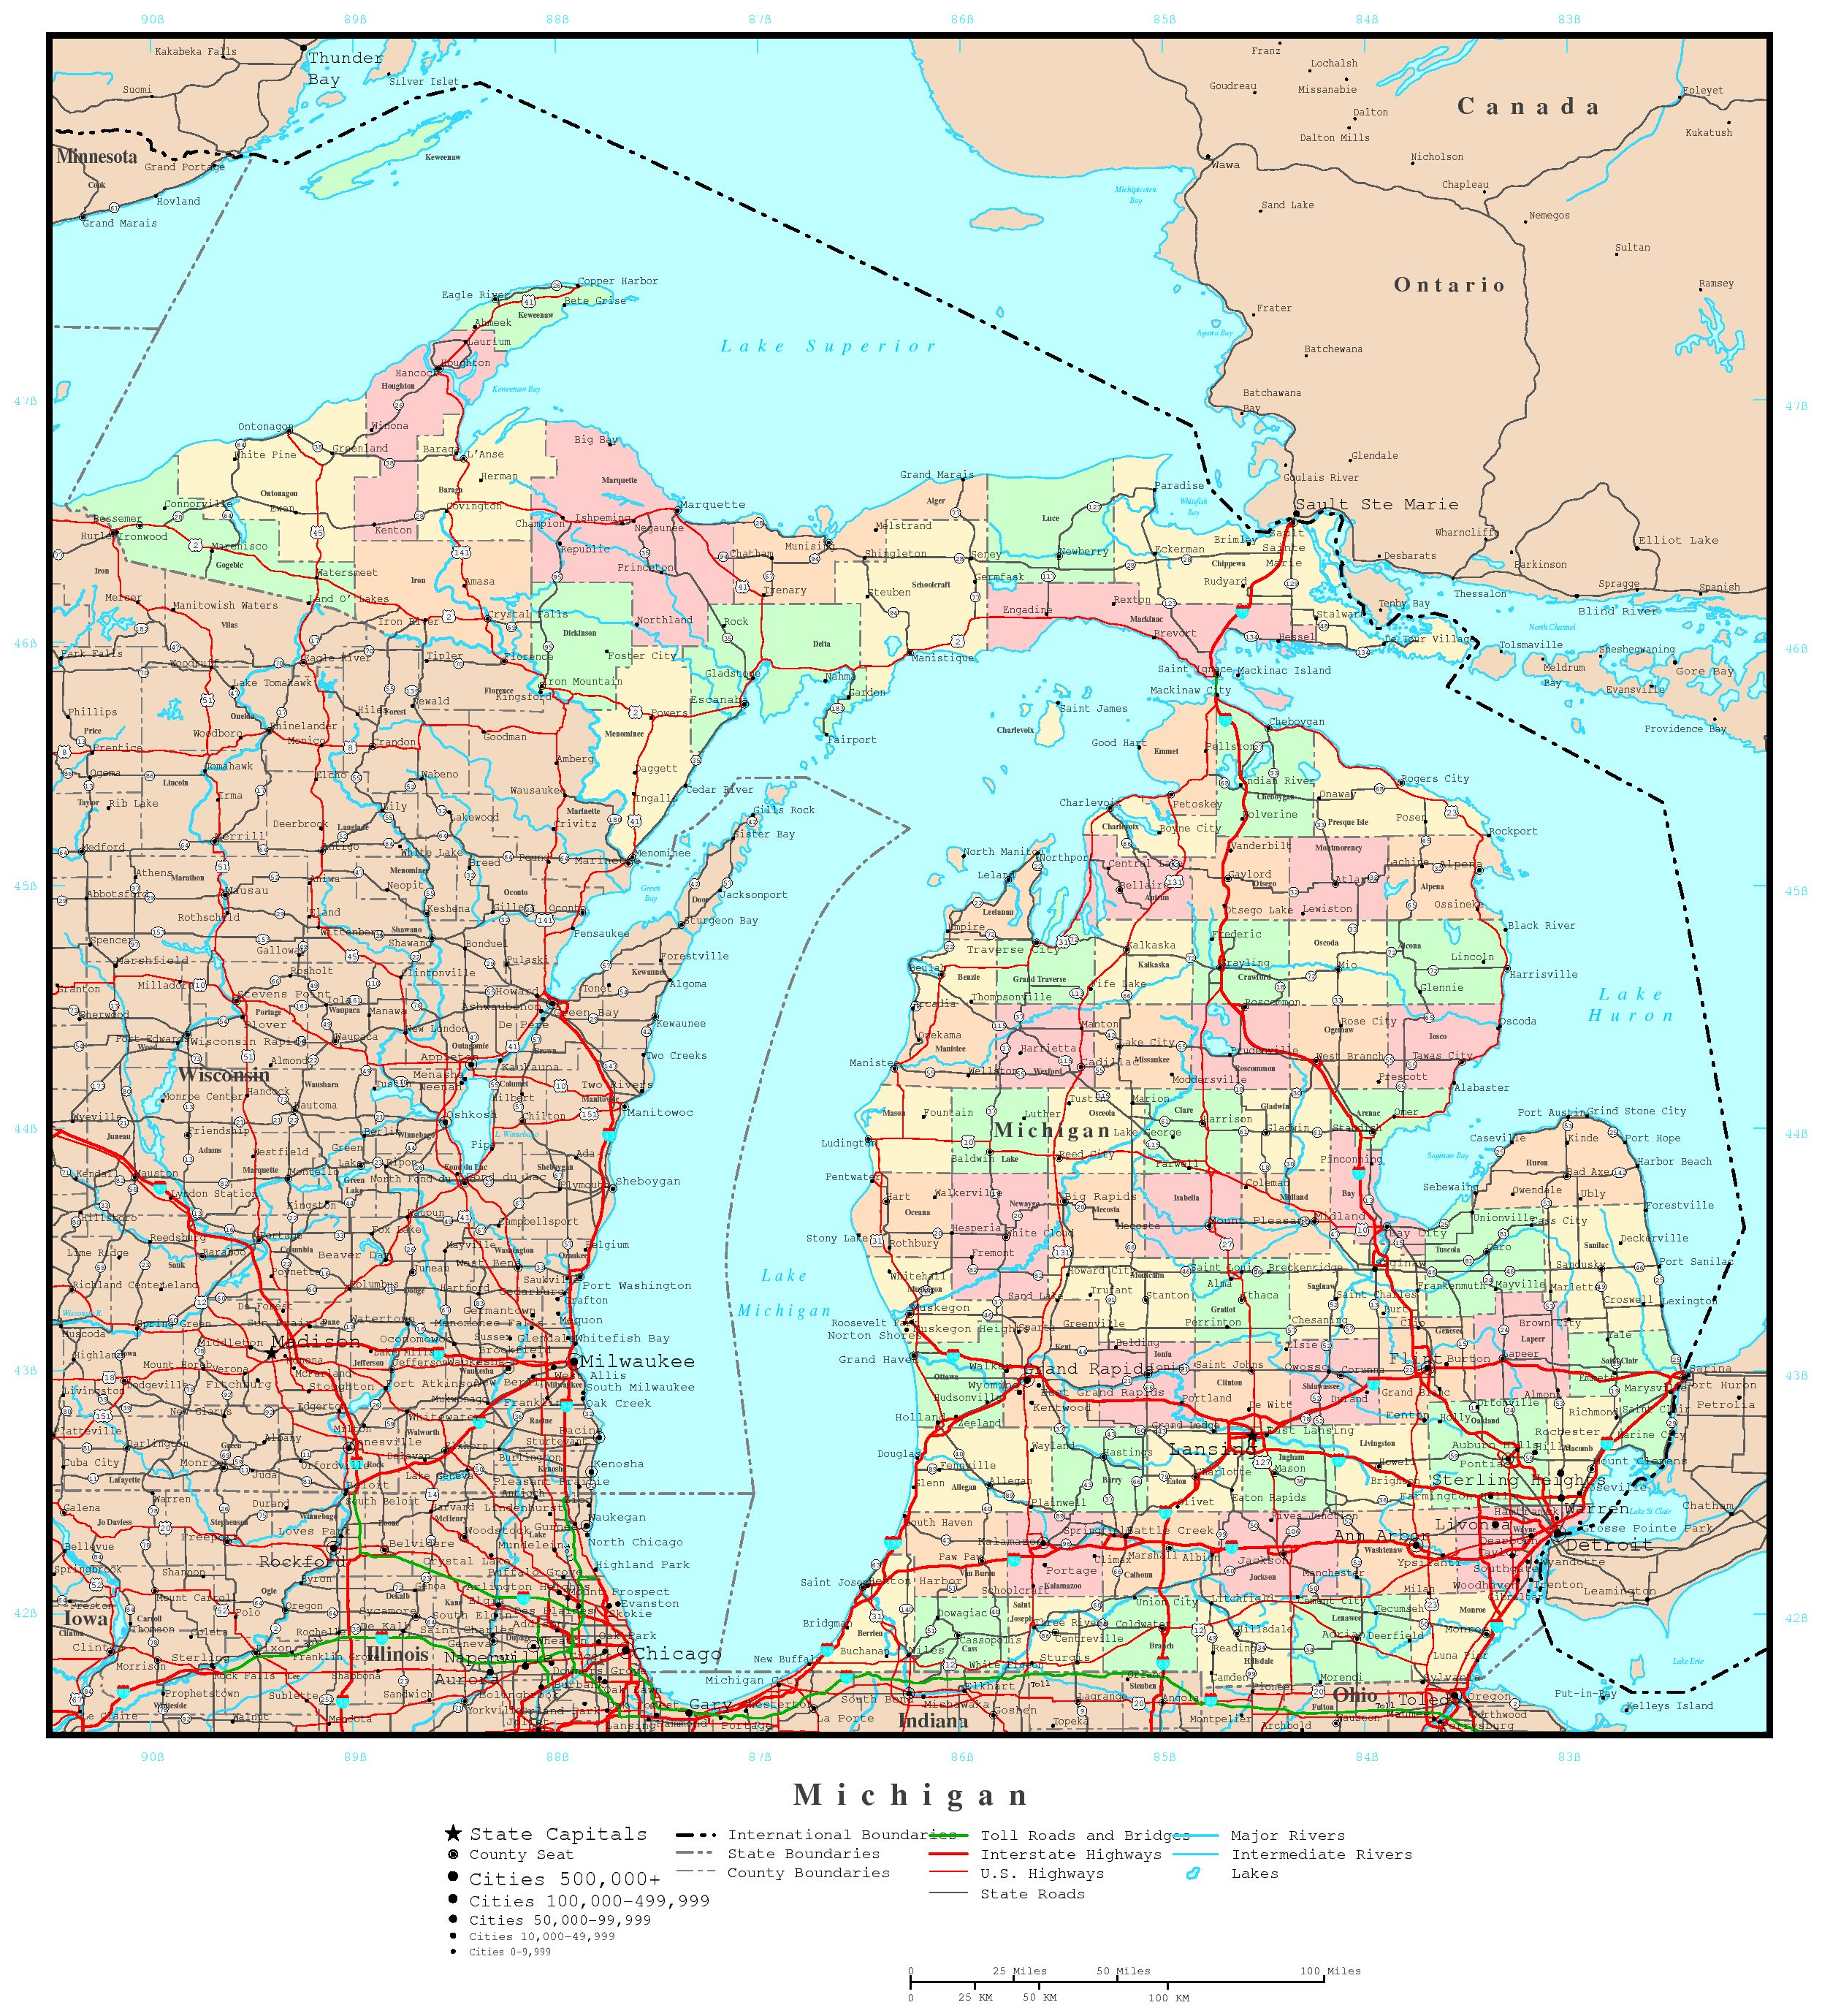 Michigan County Map With Cities And Roads Michigan Map - Michigan county map